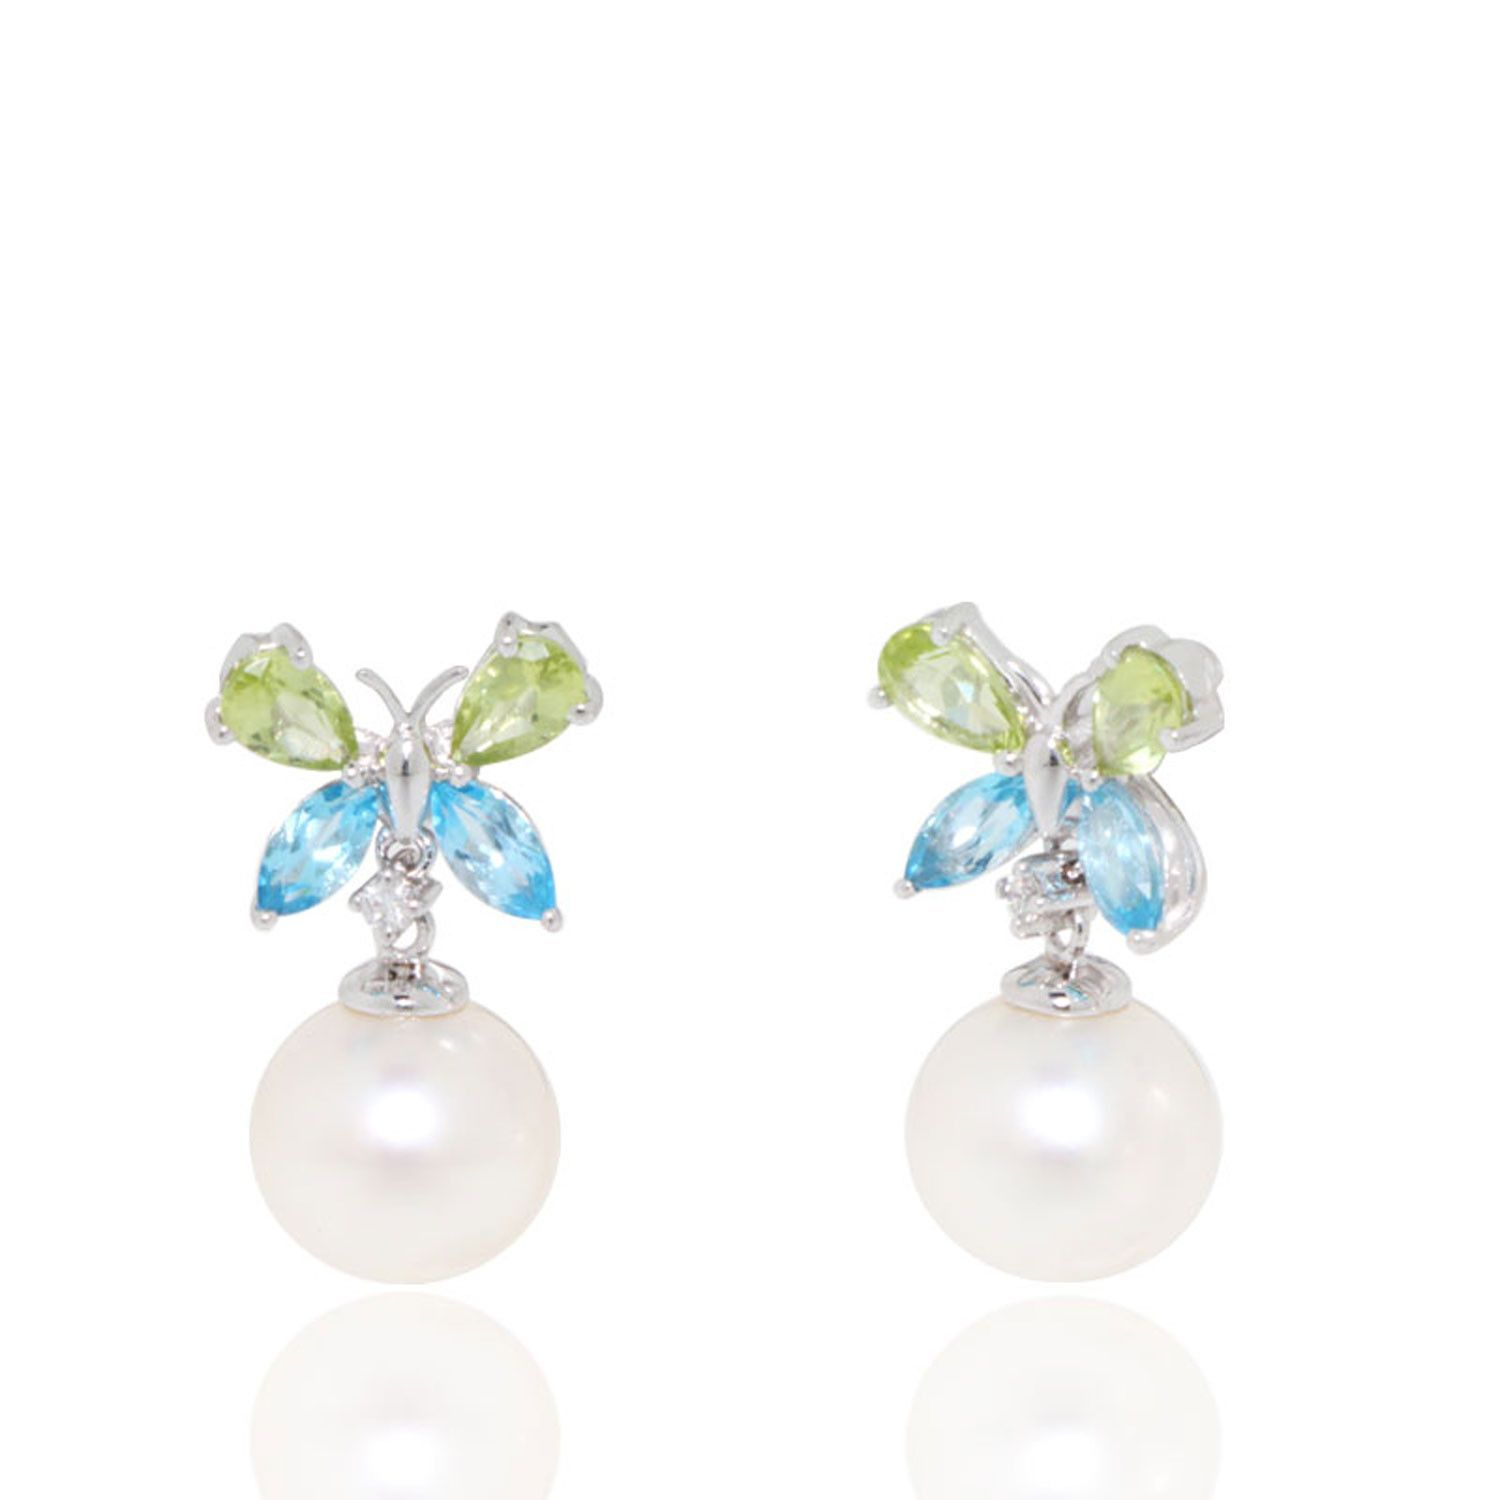 Butterfly Peridot and Blue Topaz Earrings with Freshwater Pearls